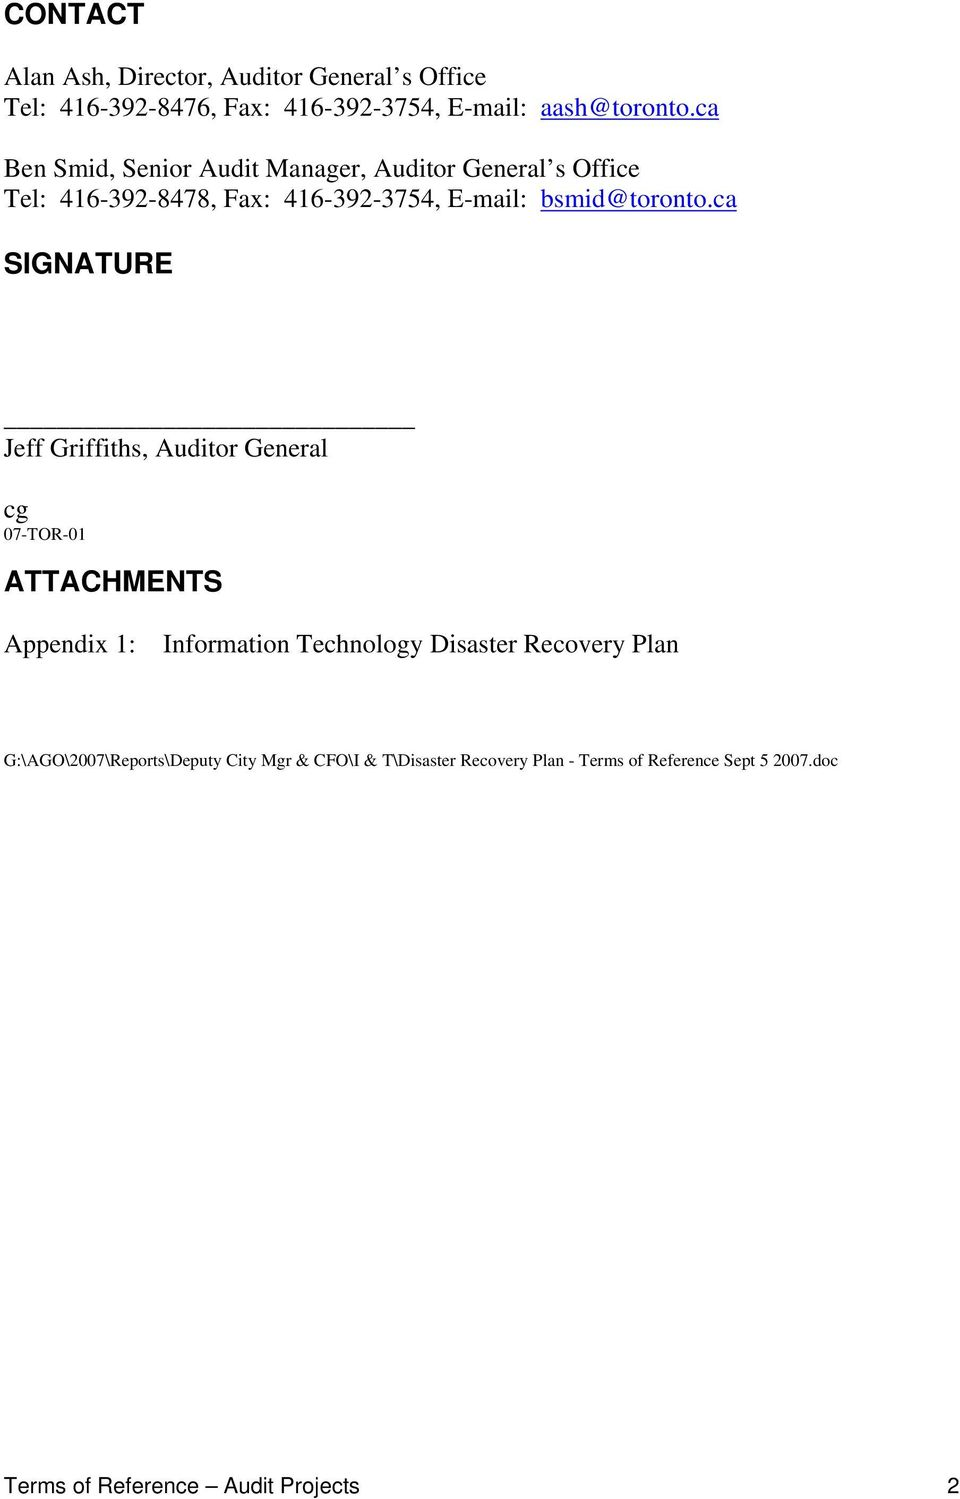 ca SIGNATURE Jeff Griffiths, Auditor General cg 07-TOR-01 ATTACHMENTS Appendix 1: Information Technology Disaster Recovery